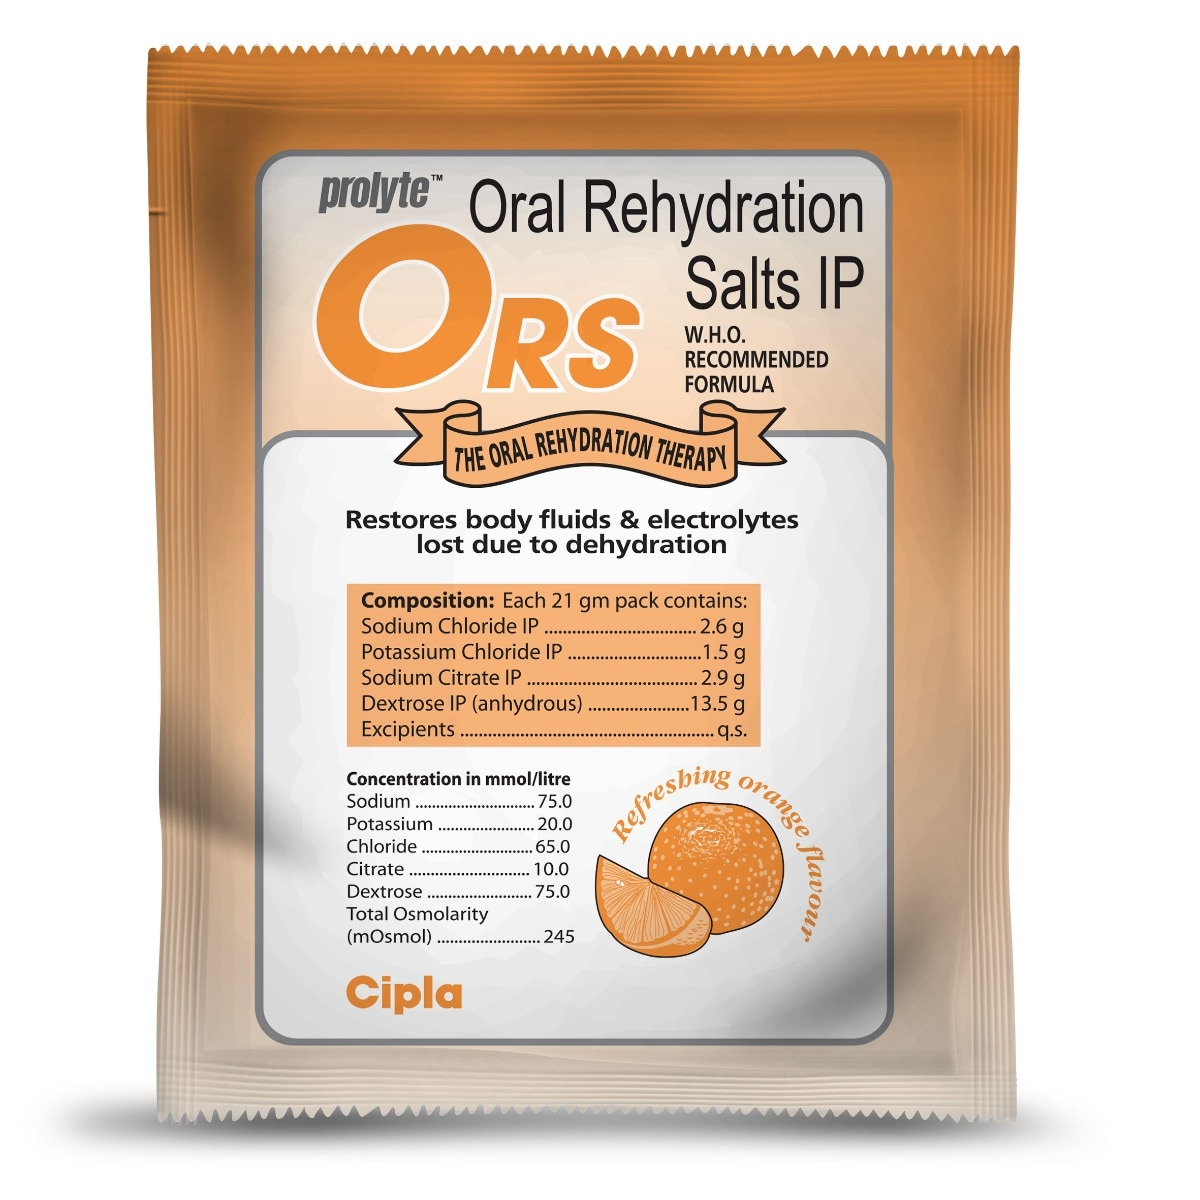 ORS Prolyte Orange Flavour Powder, 21 gm, Pack of 1